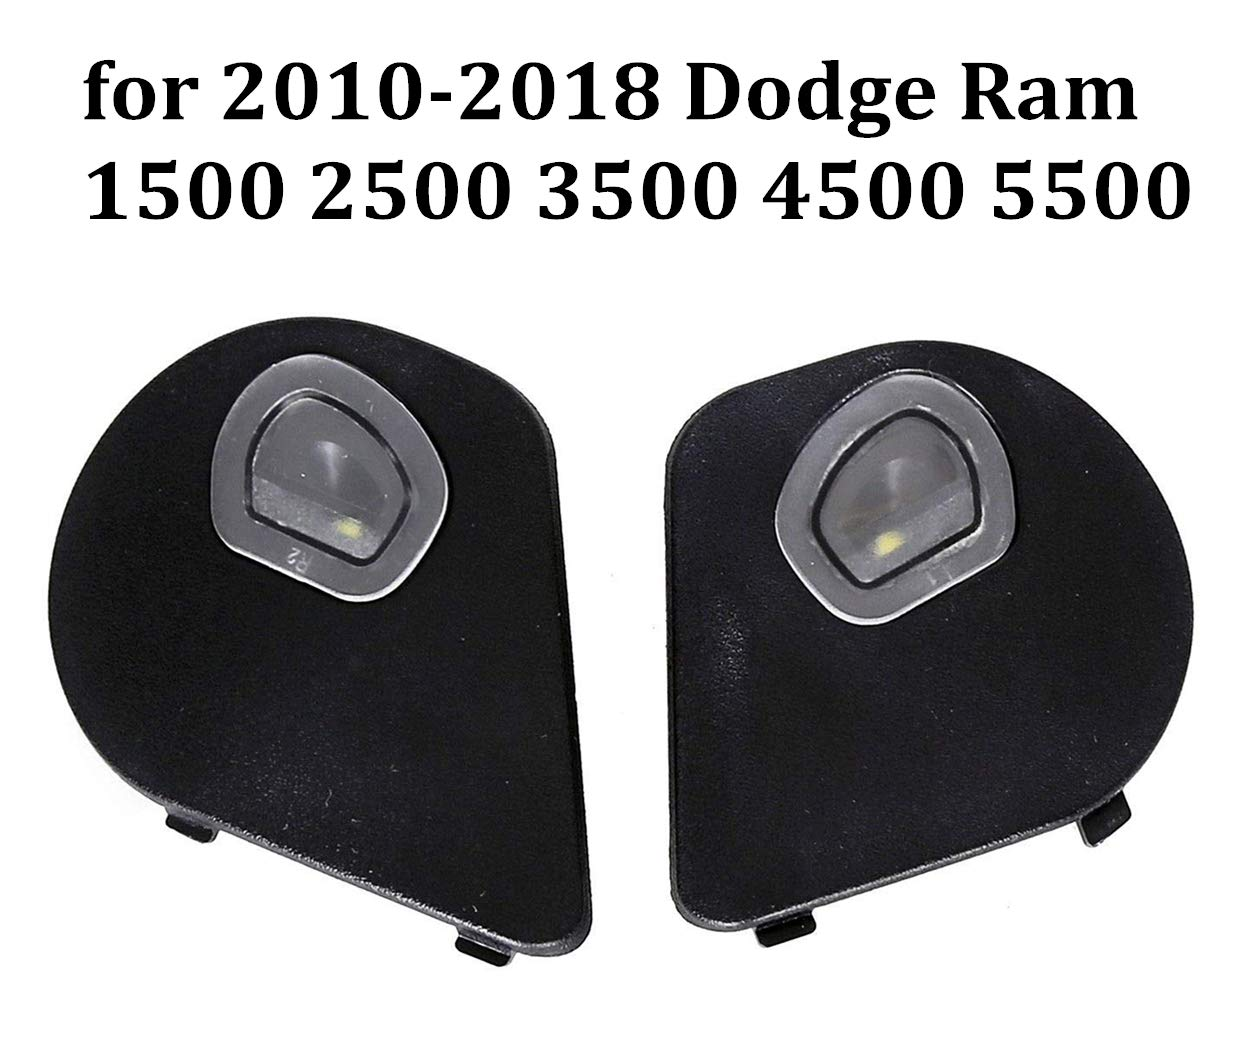 Driver and Passenger Sides Mirror Puddle Lights Lamps for 2010-2018 Dodge Ram 1500 2500 3500 4500 5500,1 Pair